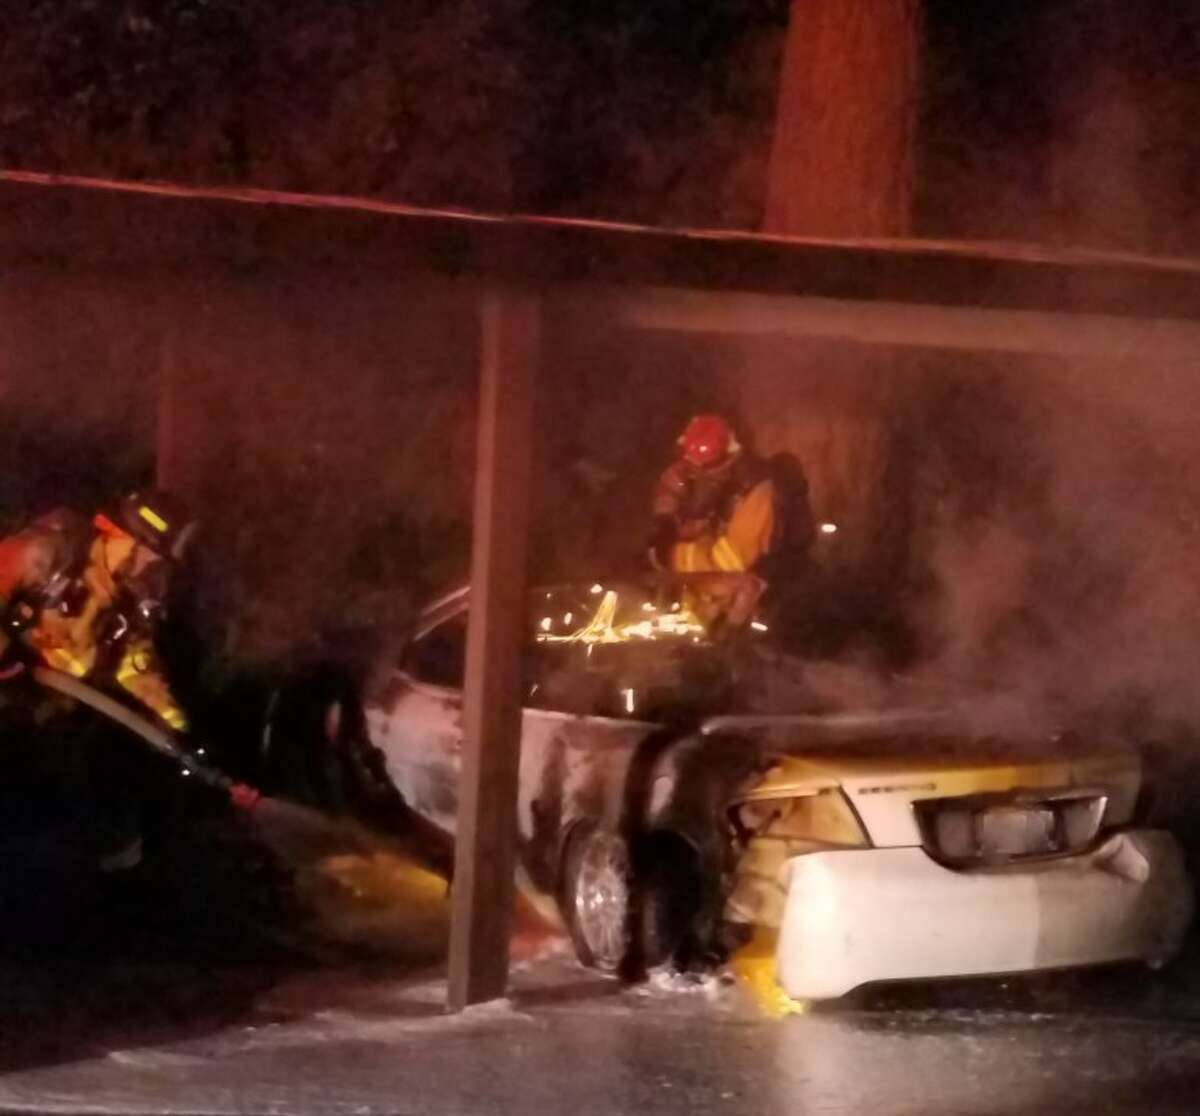 Fire crews put out a vehicle fire caused by an unknown arsonist in the early hours of Sept. 28 in Redmond.